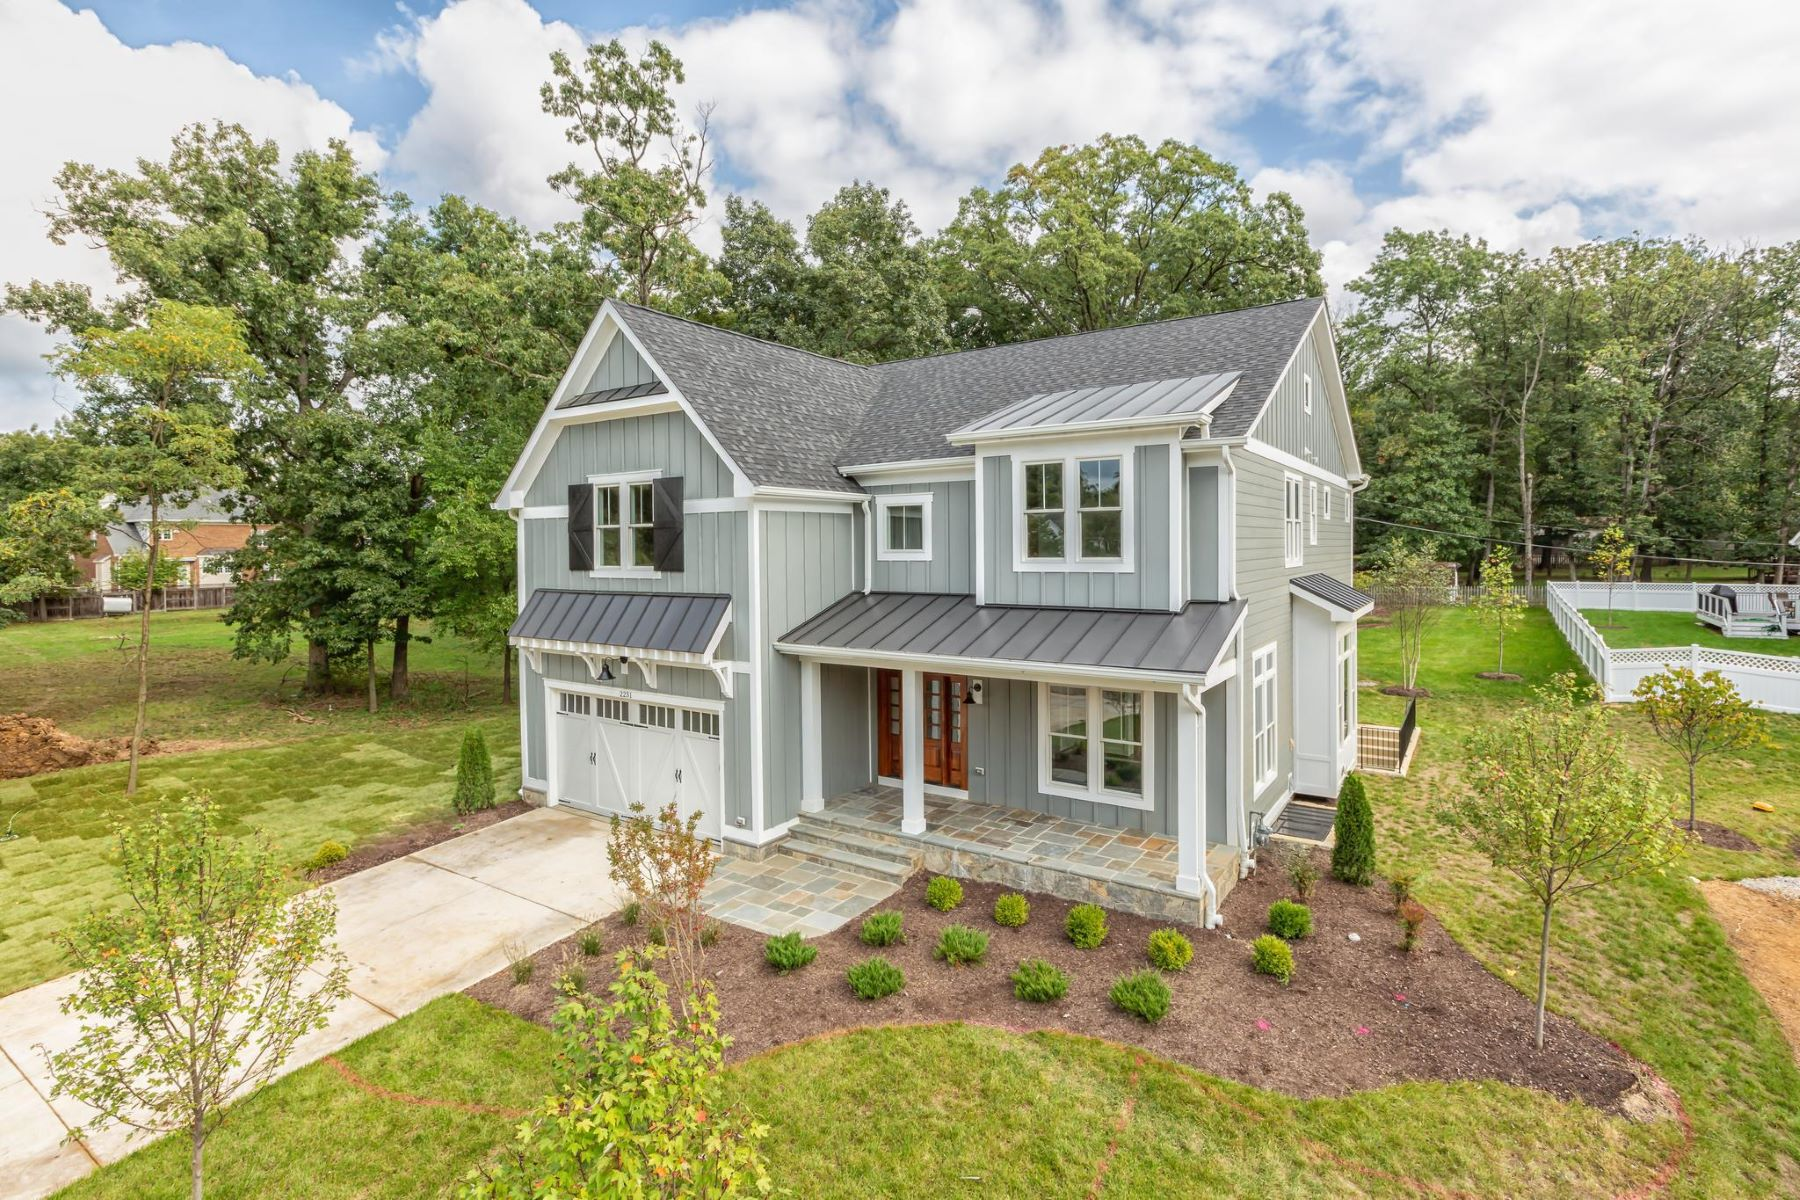 Single Family Homes for Active at 1203 Drake St Sw Vienna, Virginia 22180 United States